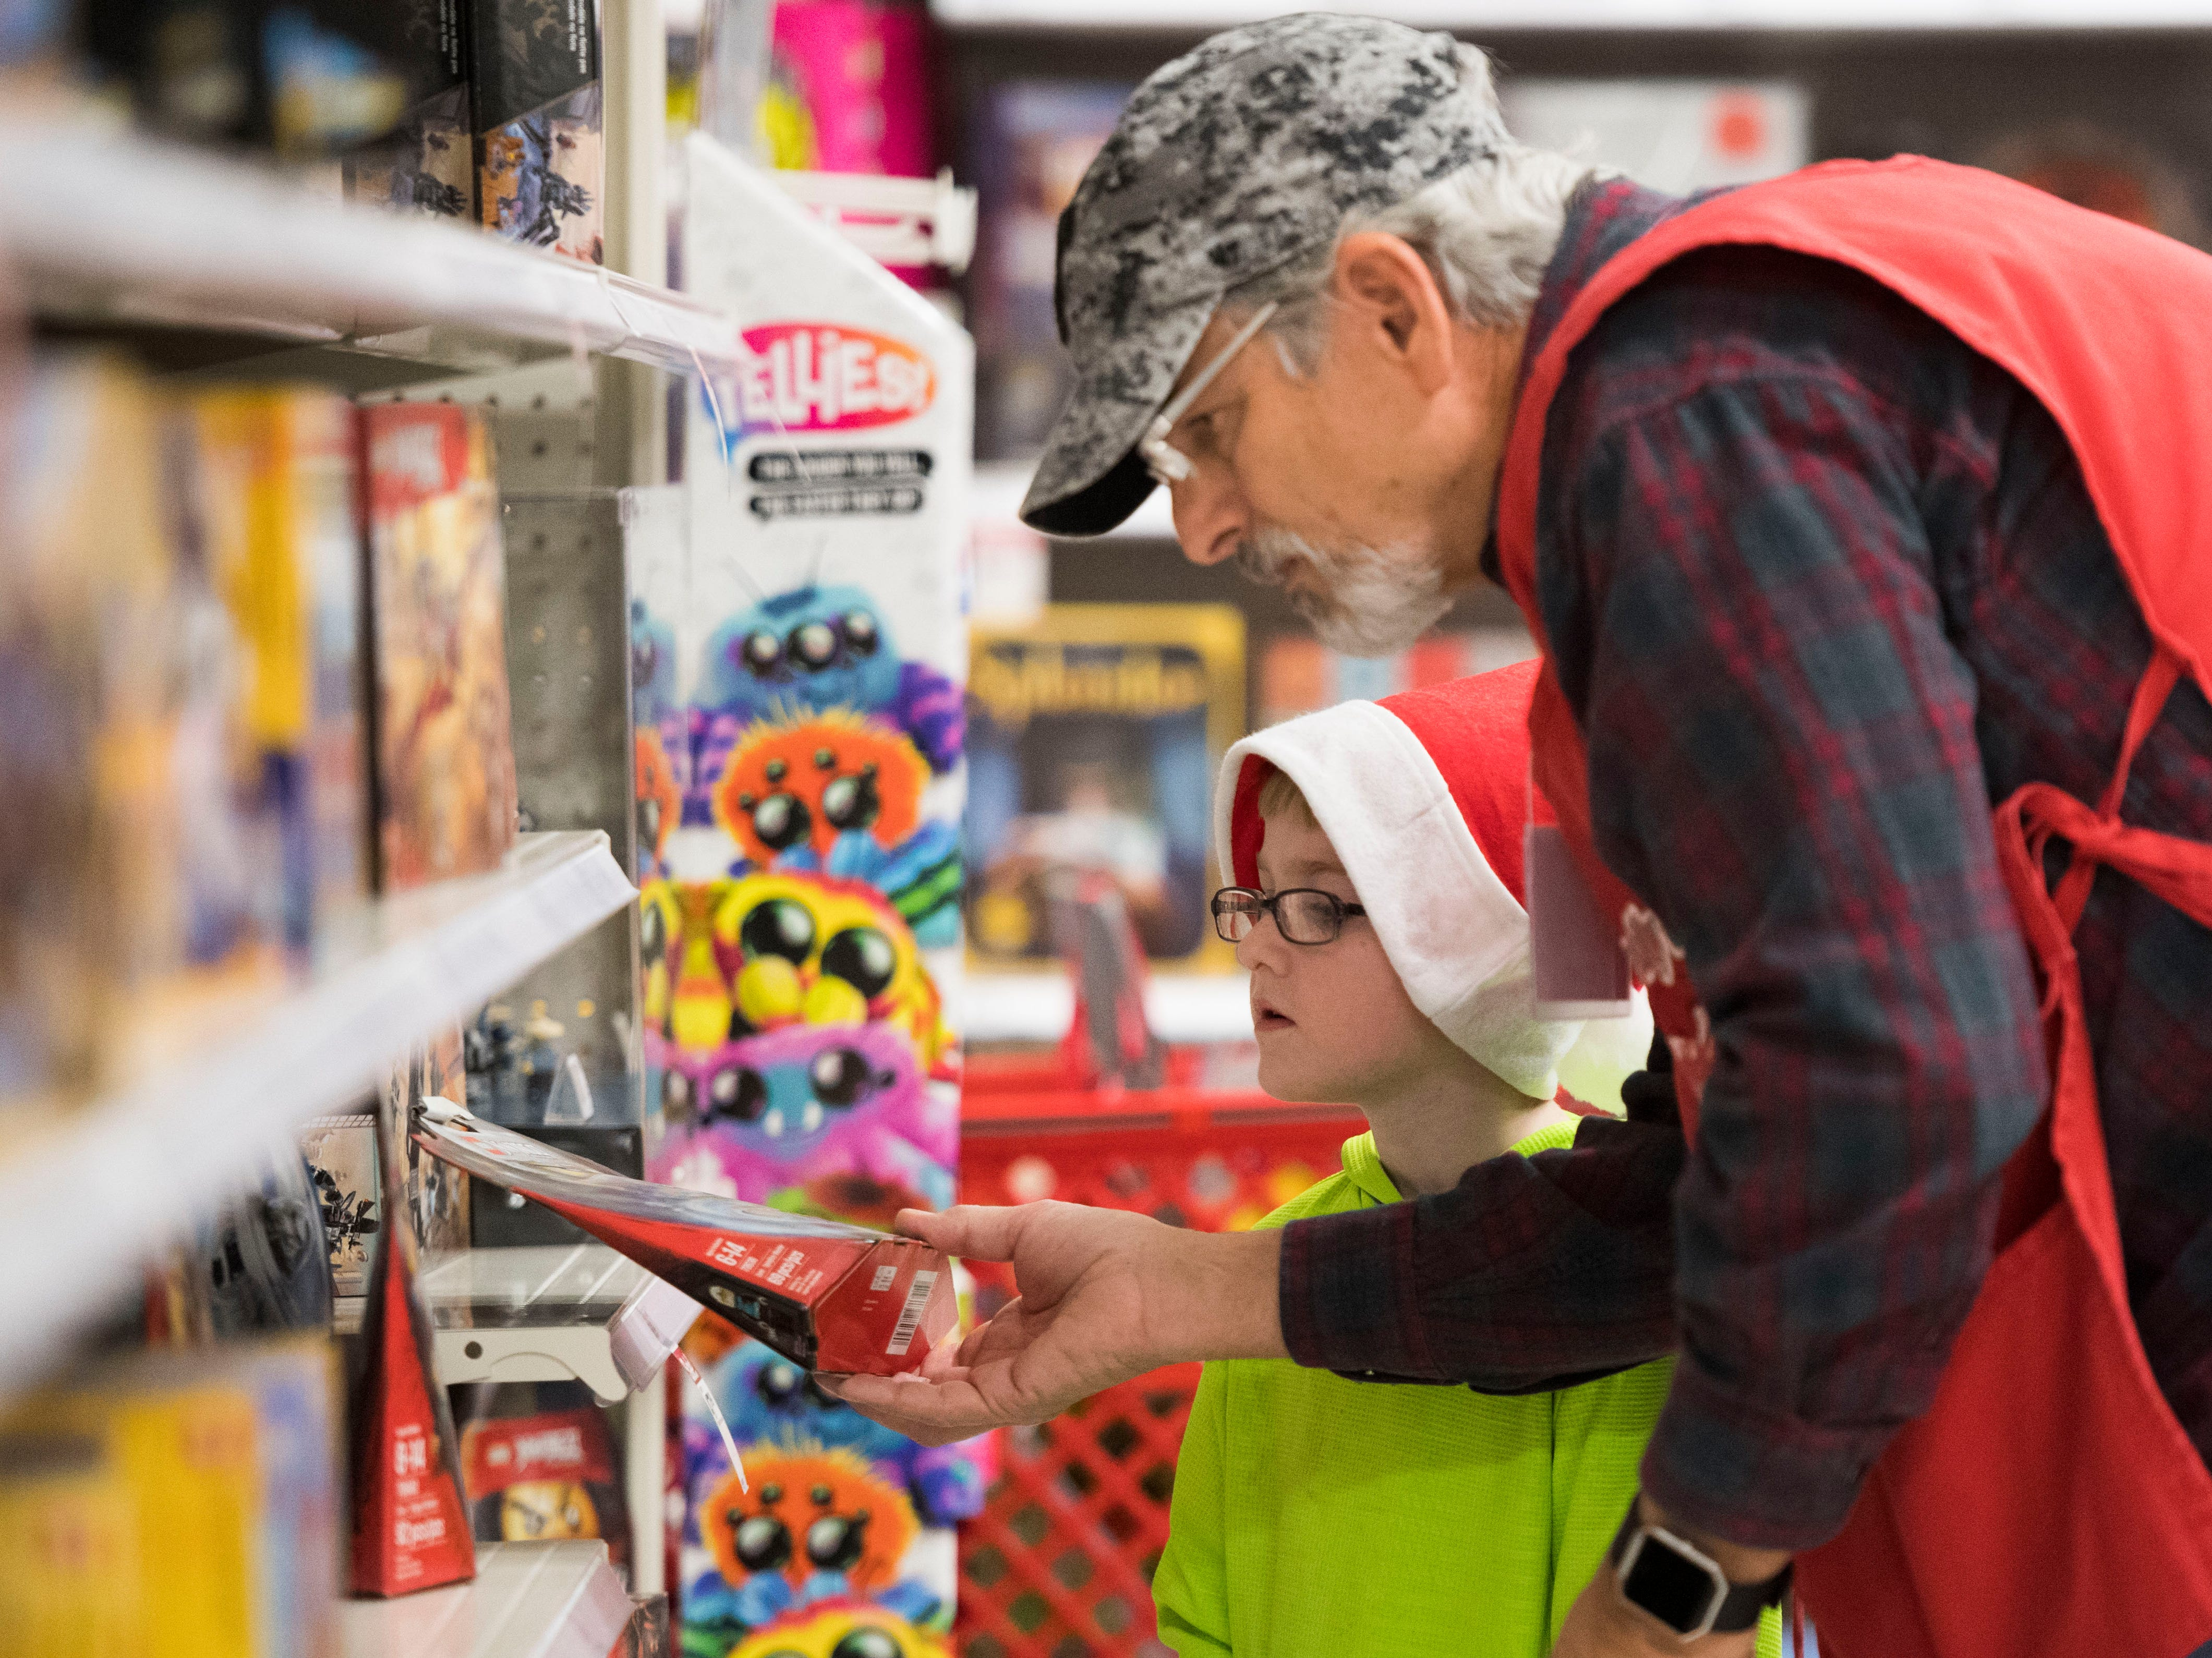 Brad Lofland helps Cason, 6, pick out a toy at the Target on Clinton Highway during the annual Weigel's Family Christmas Saturday, Dec. 1, 2018. This is the 21st year Weigel's has held the shopping spree for local underprivileged children.